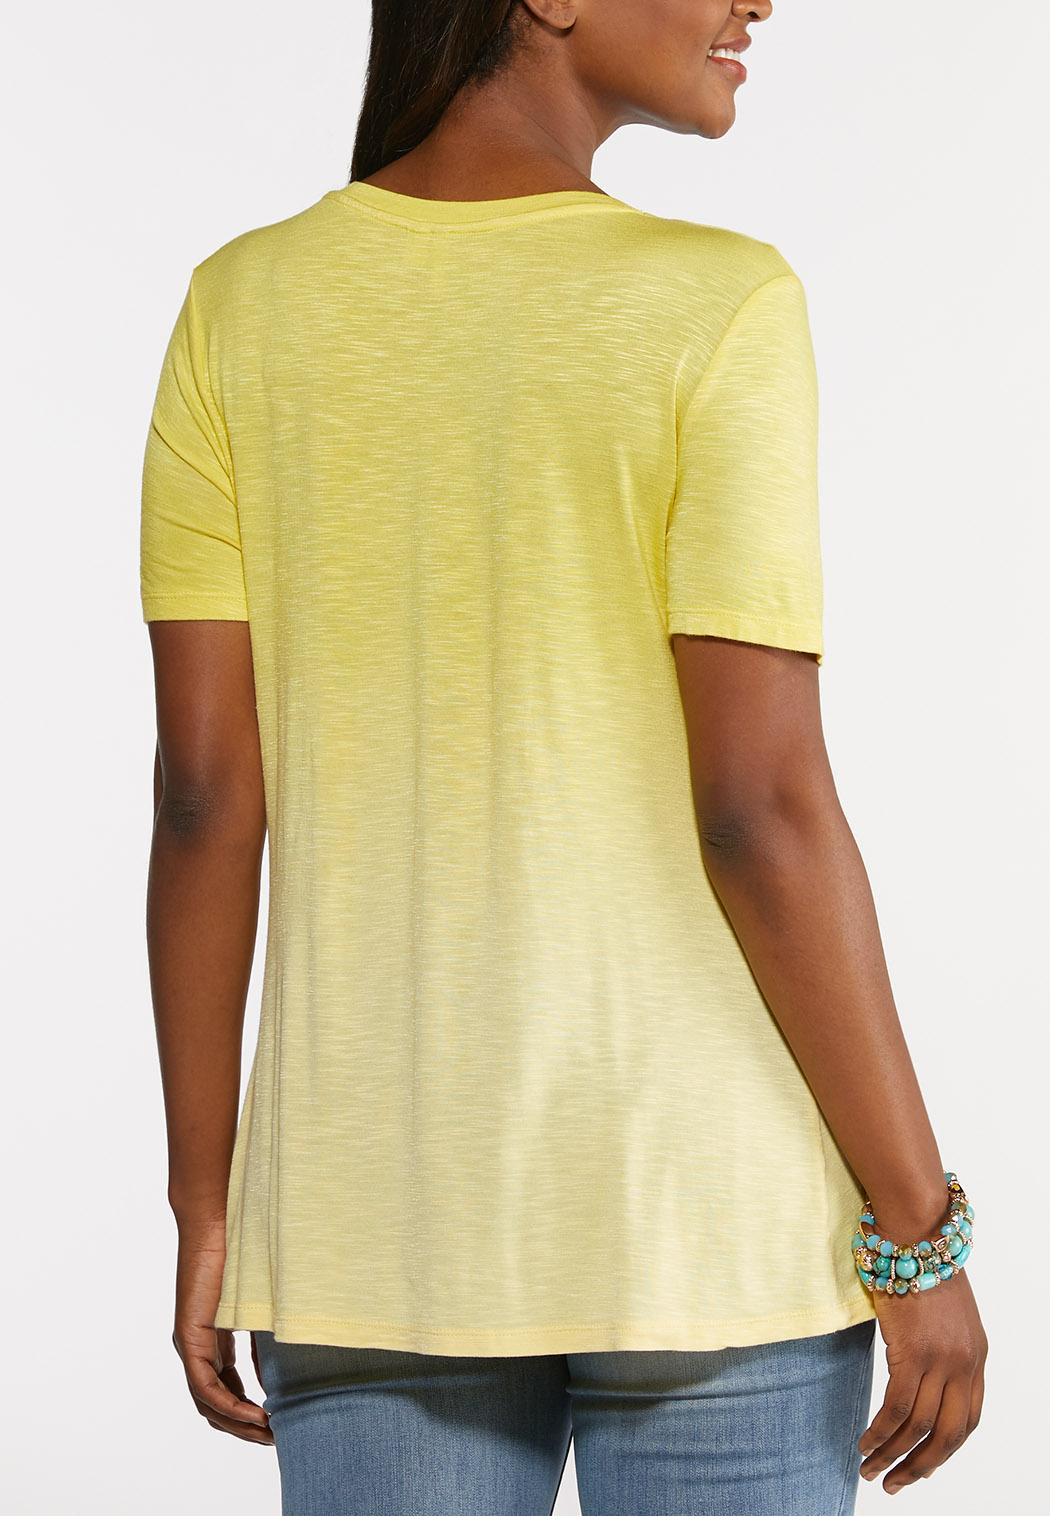 Plus Size On The Bright Side Tee (Item #44243930)